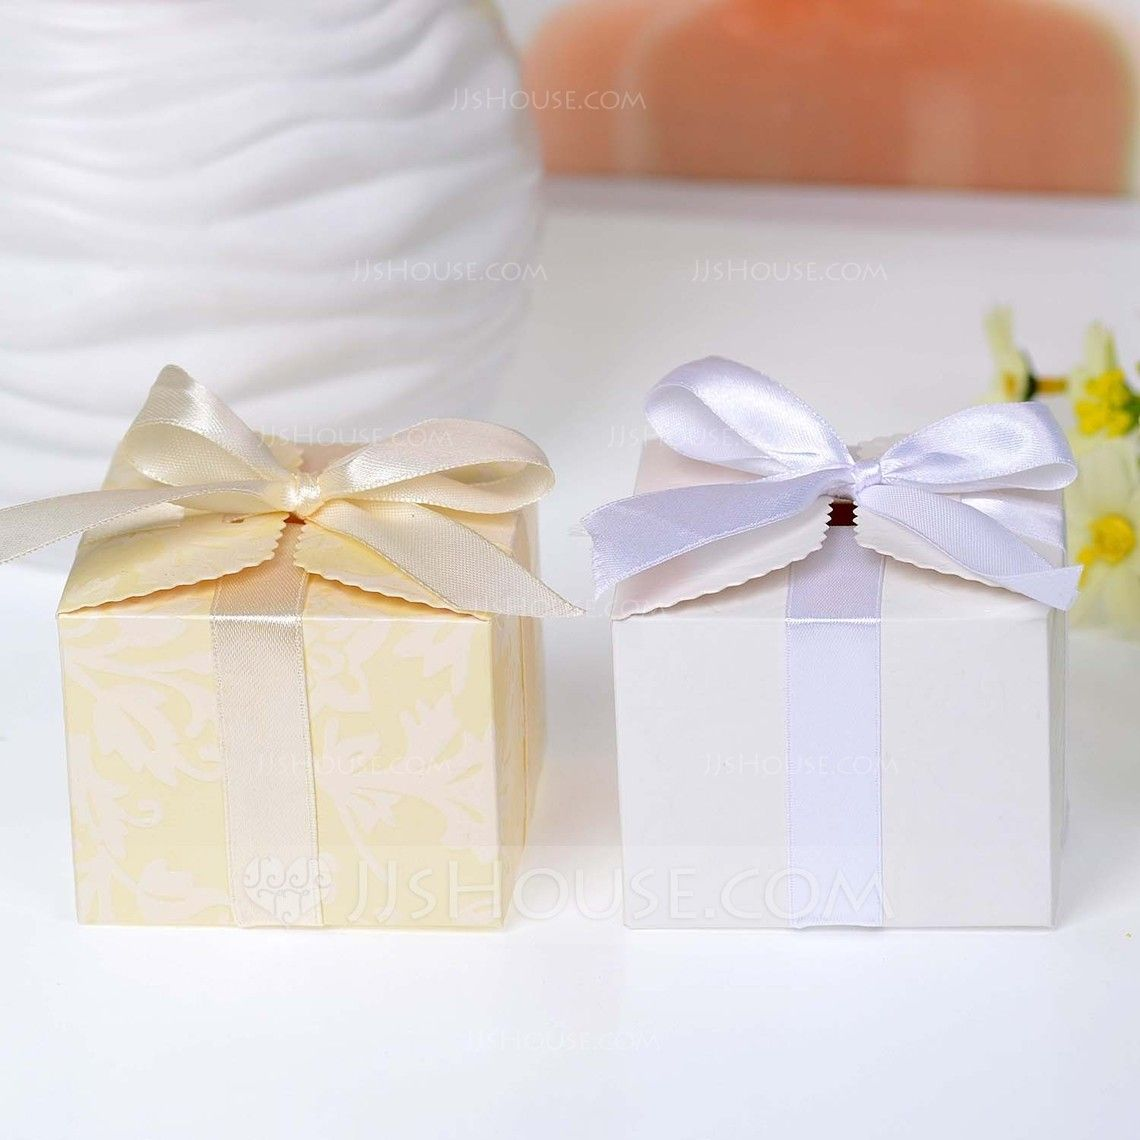 Beautiful Cuboid Favor Boxes With Bow (Set of 12) (050046729 ...